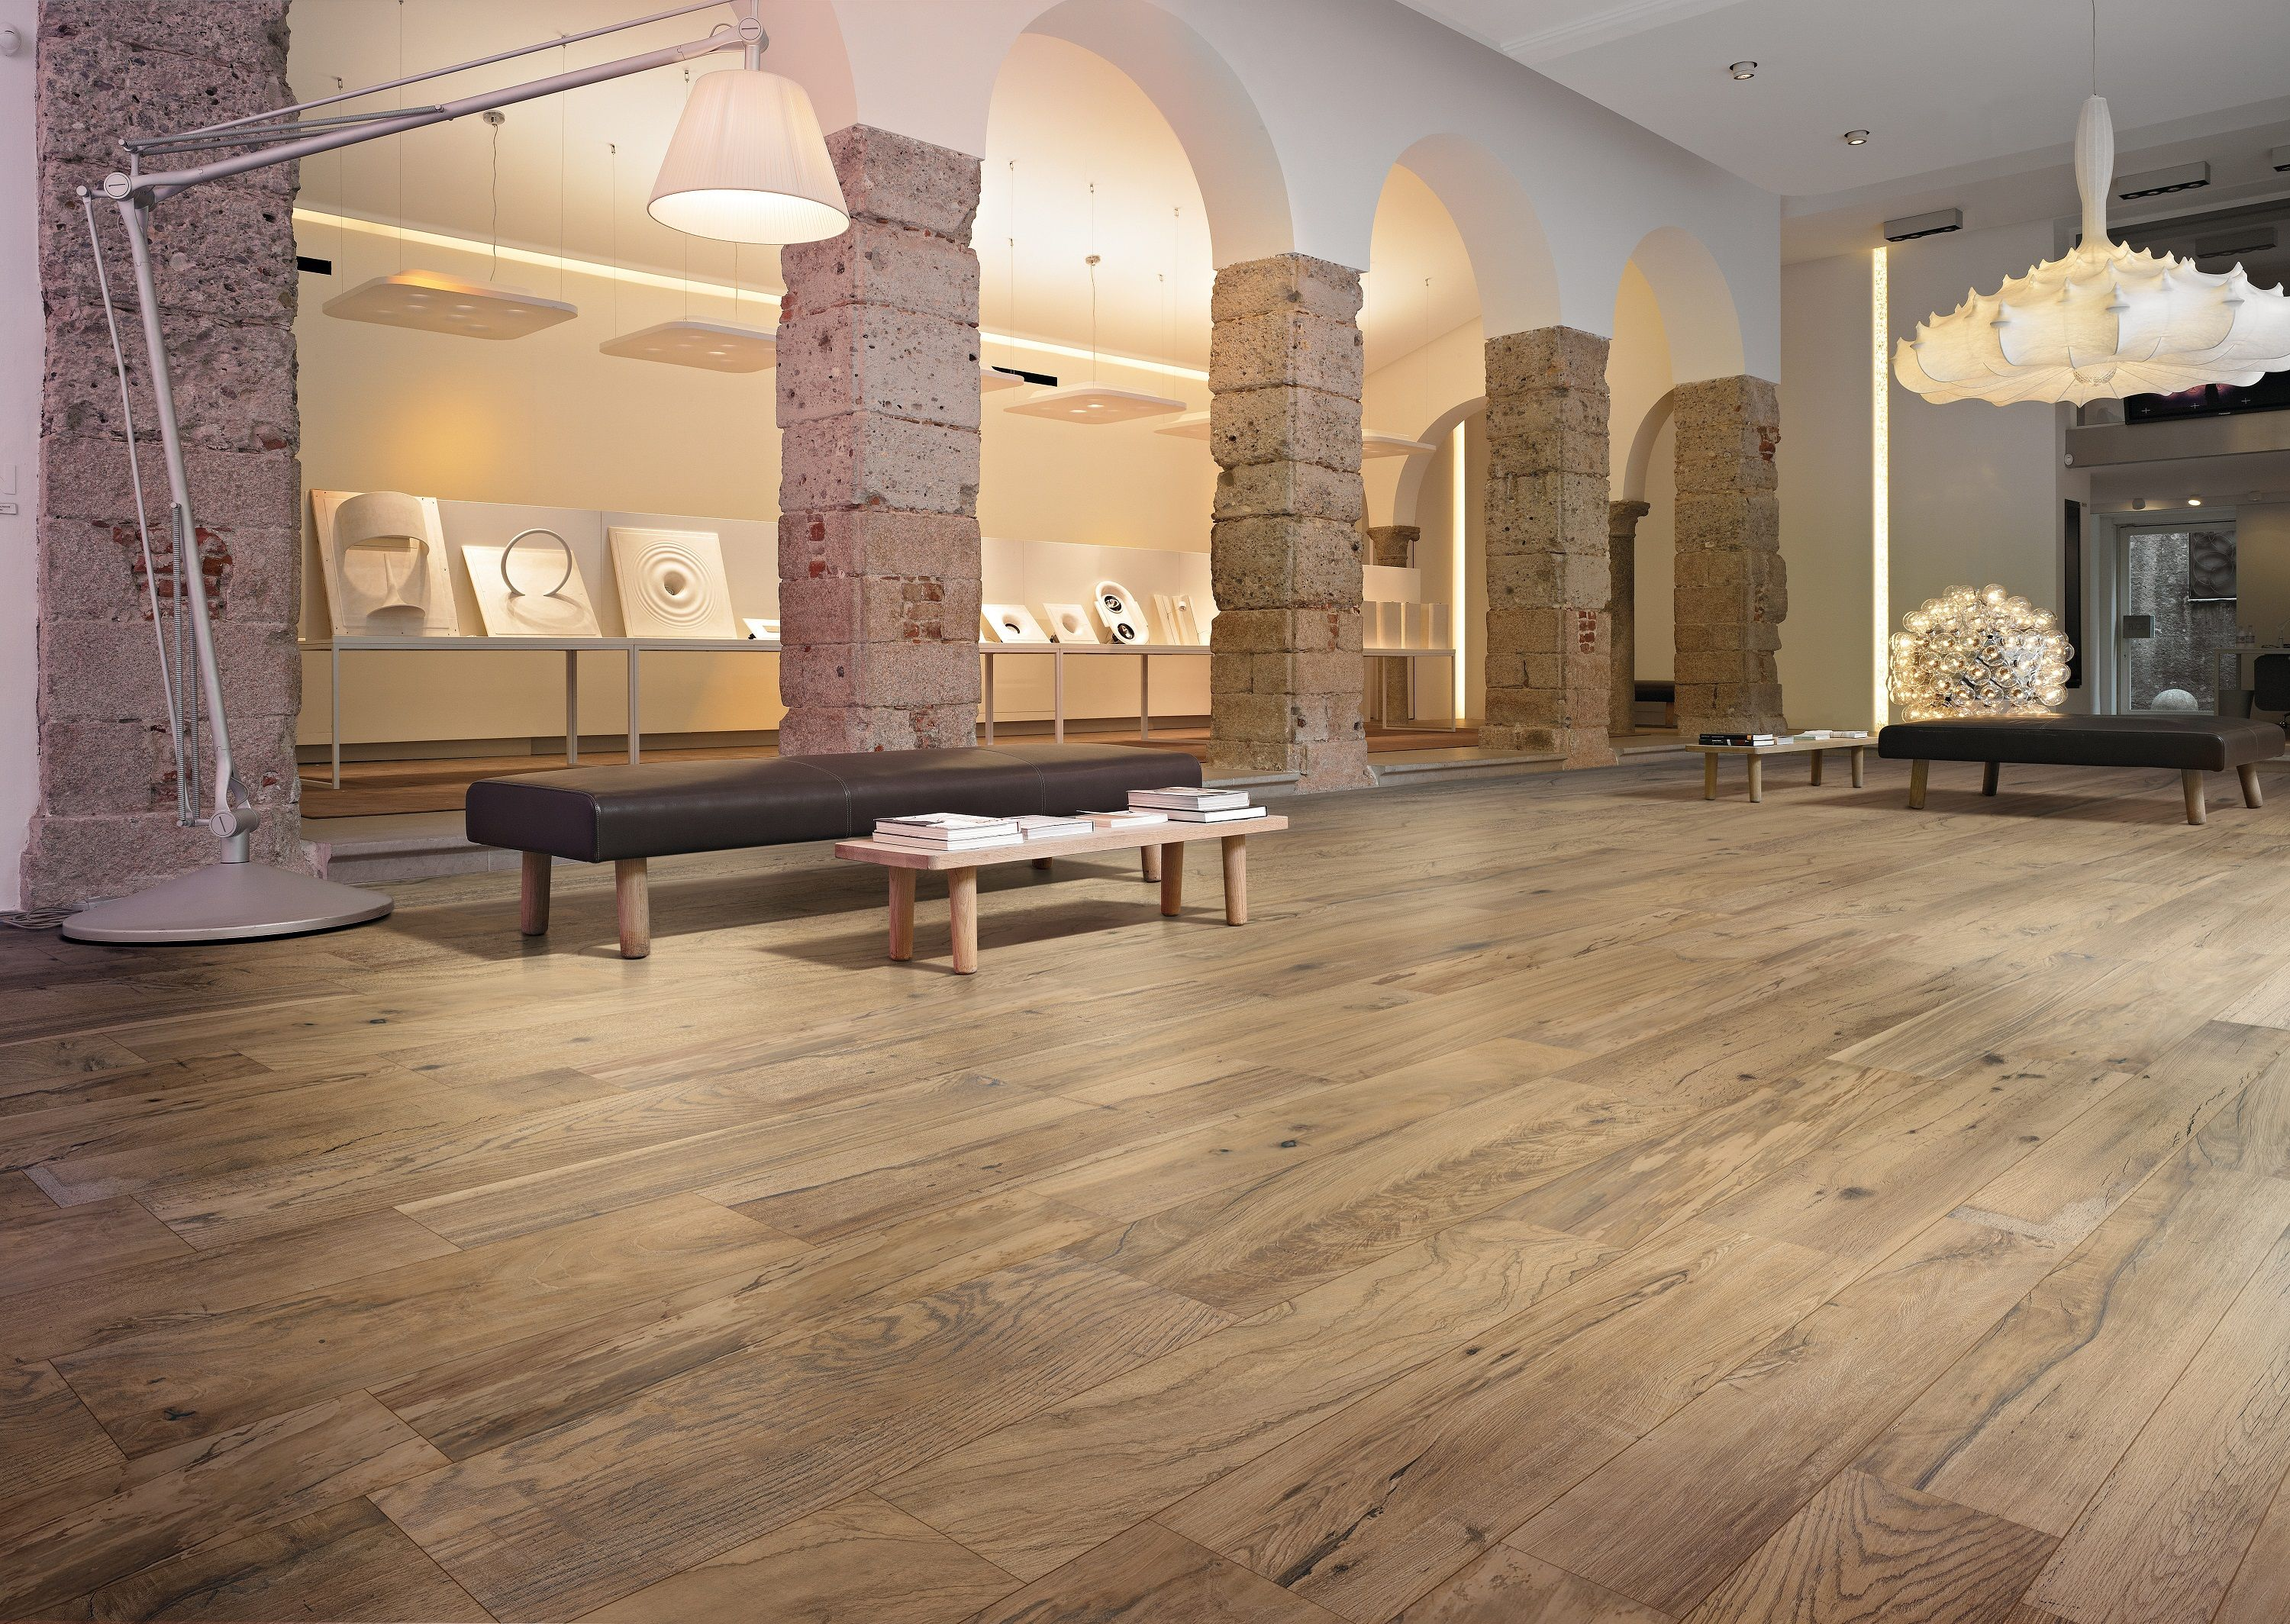 Sienna reclaimed wood beige porcelain tile in 9x36 and 6x36 sienna reclaimed wood beige porcelain tile in 9x36 and 6x36 pattern http dailygadgetfo Gallery